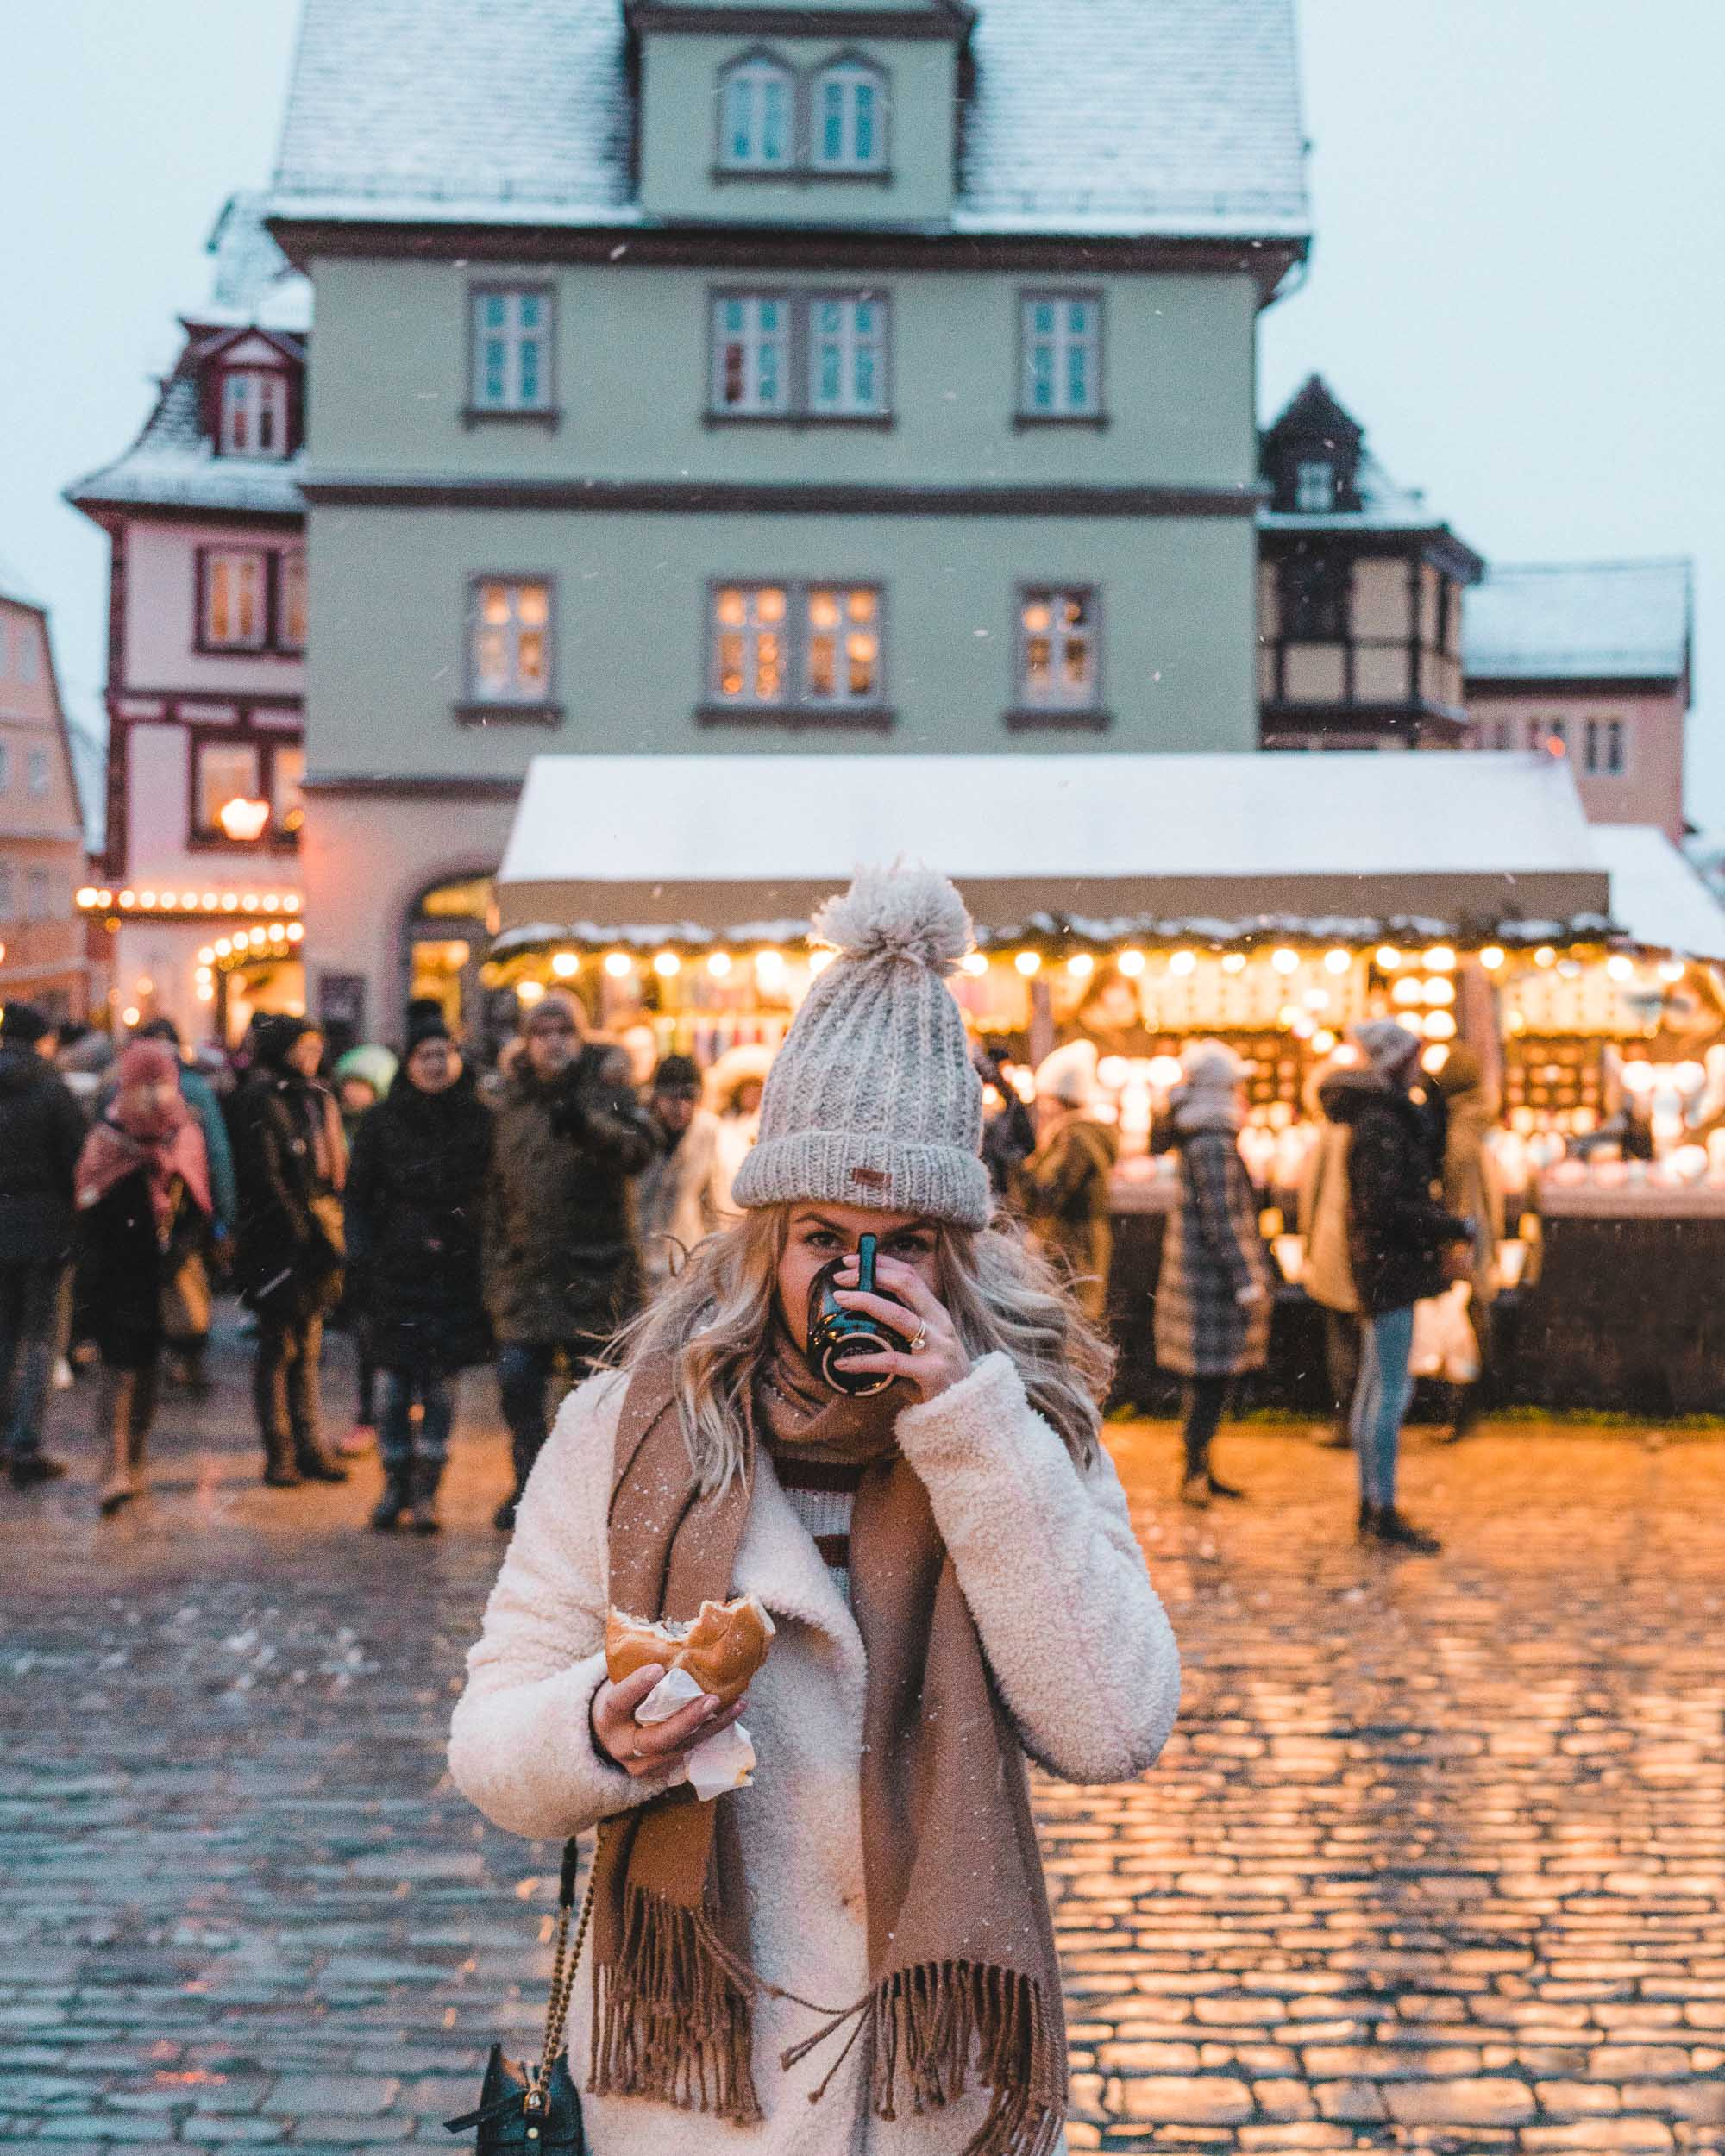 Rothenburg ob der tauber Germany Christmas Markets